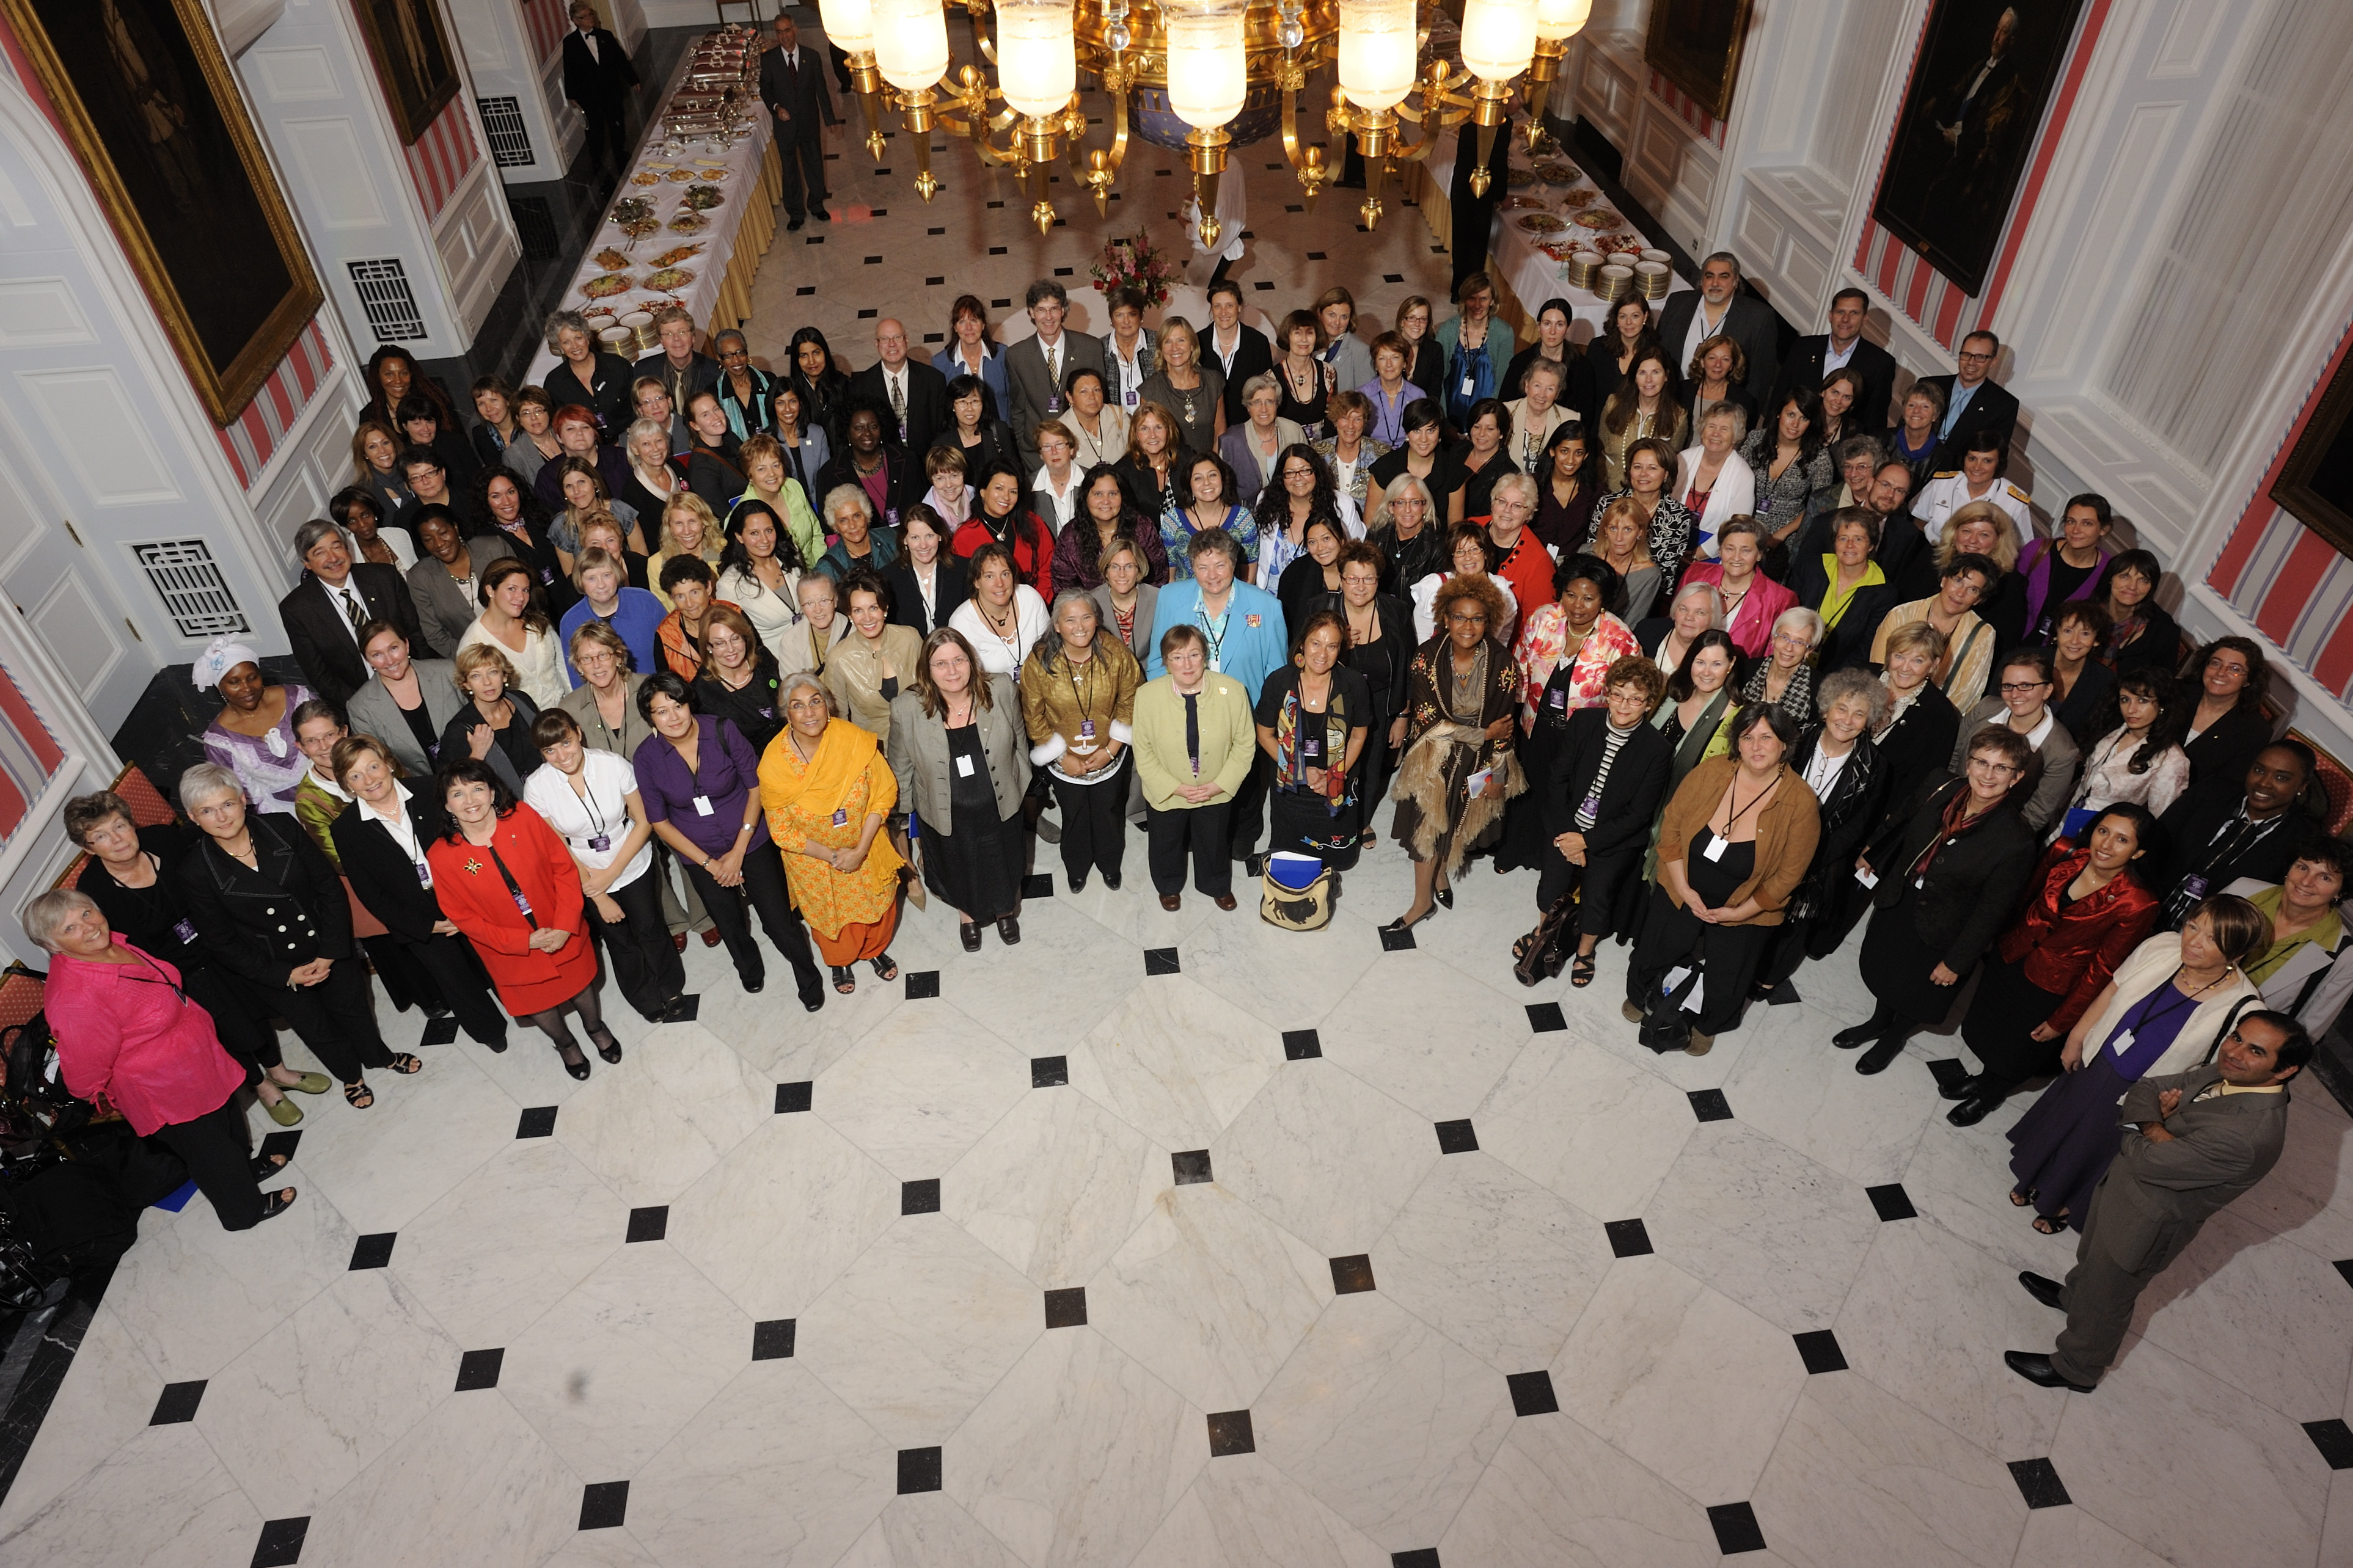 A group photo of the participants to the event. They came from all backgrounds and from everywhere in Canada.